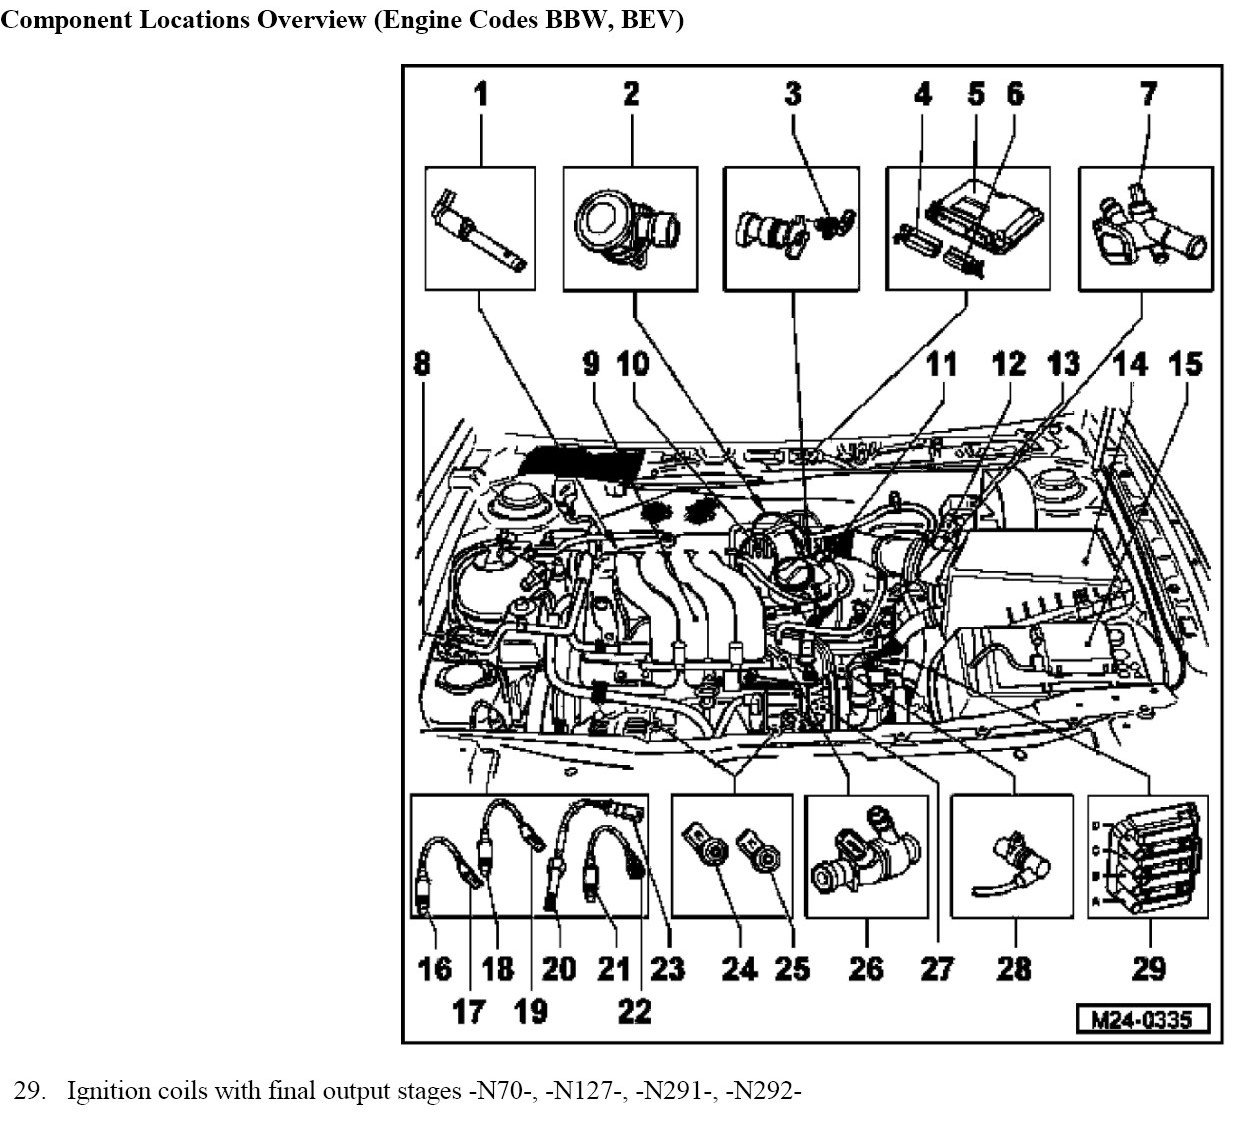 2000 volkswagen jetta 2 0 engine diagram i have an error code of 'p2203' on my 2004 vw golf 2.0 fsi ... #2